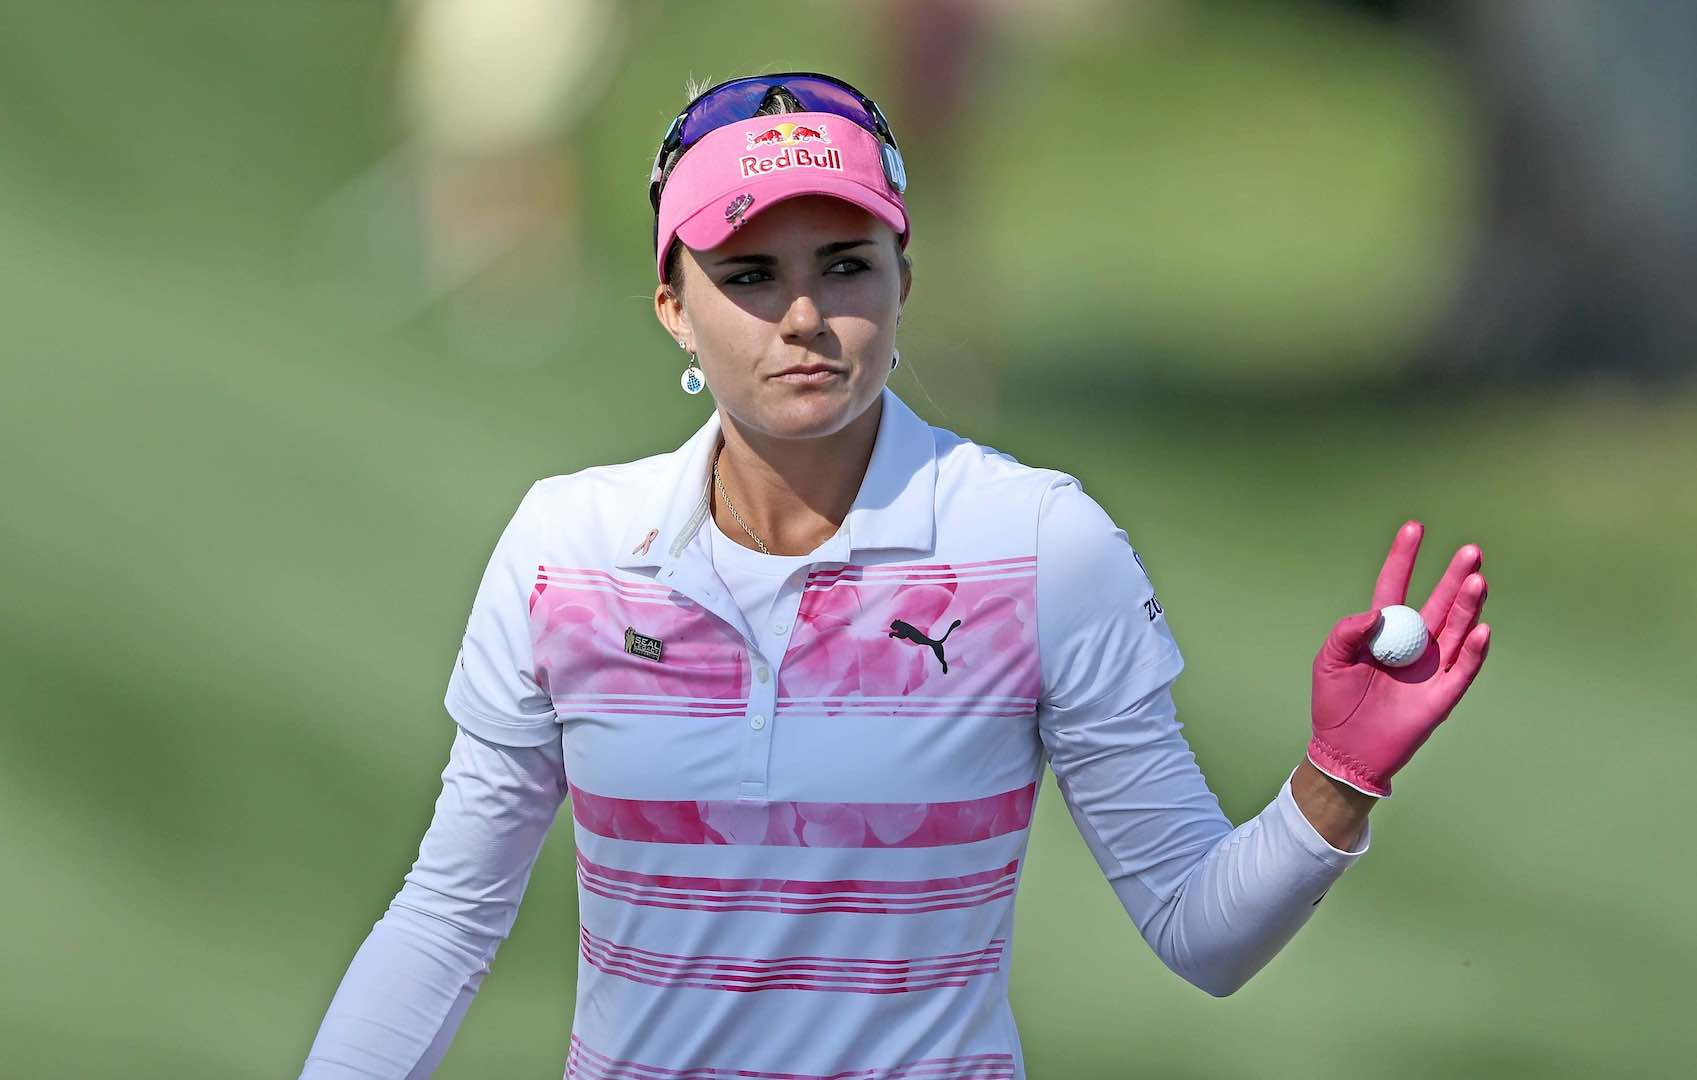 Lexi leads on day 2